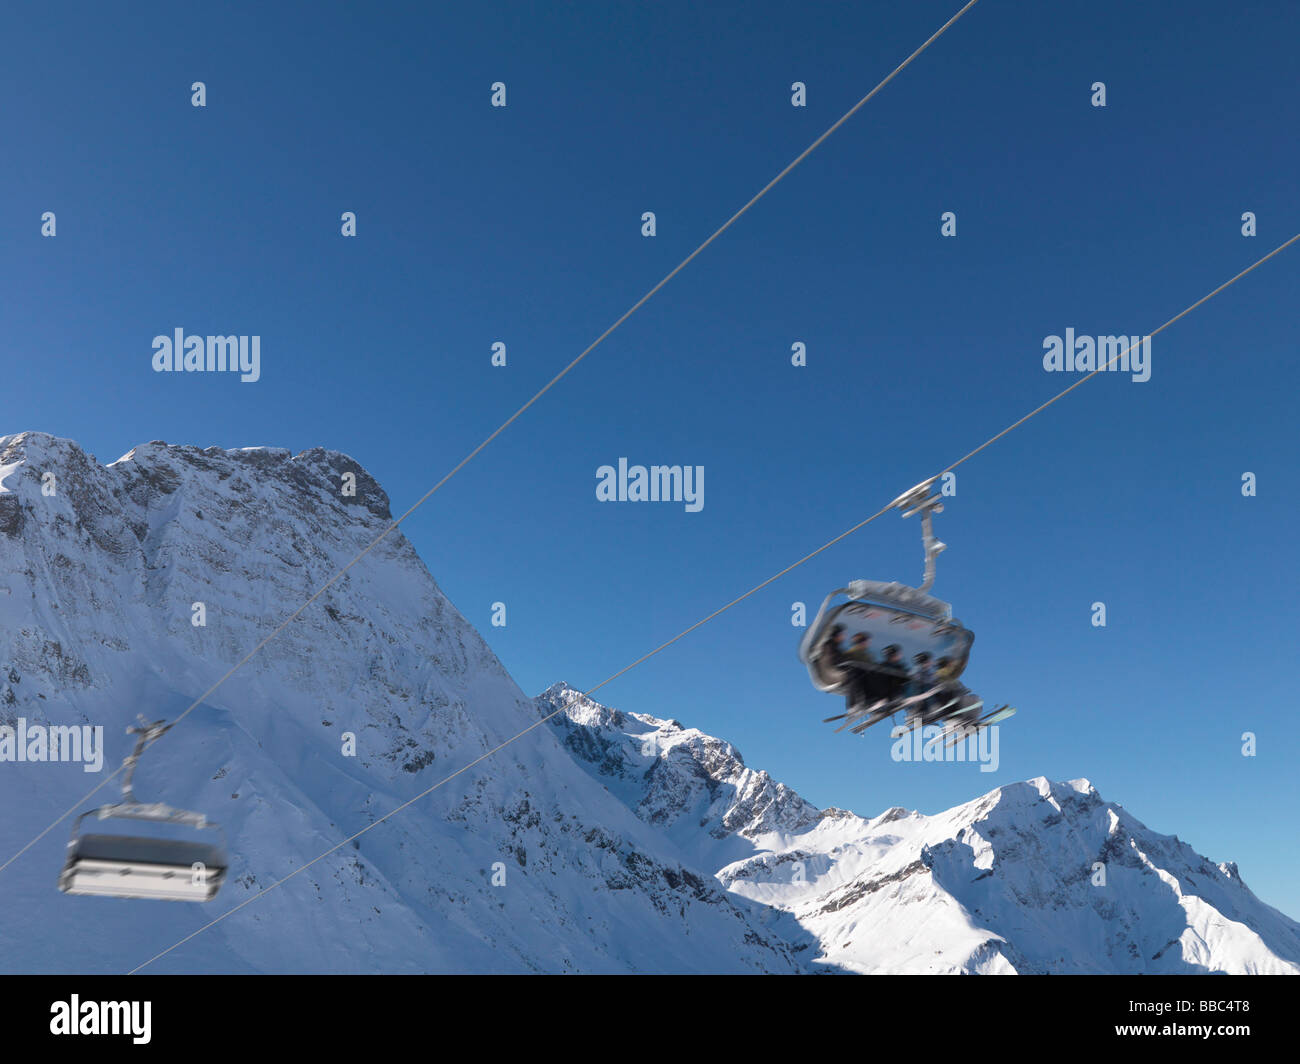 Friends in ski lift, blurred motion - Stock Image